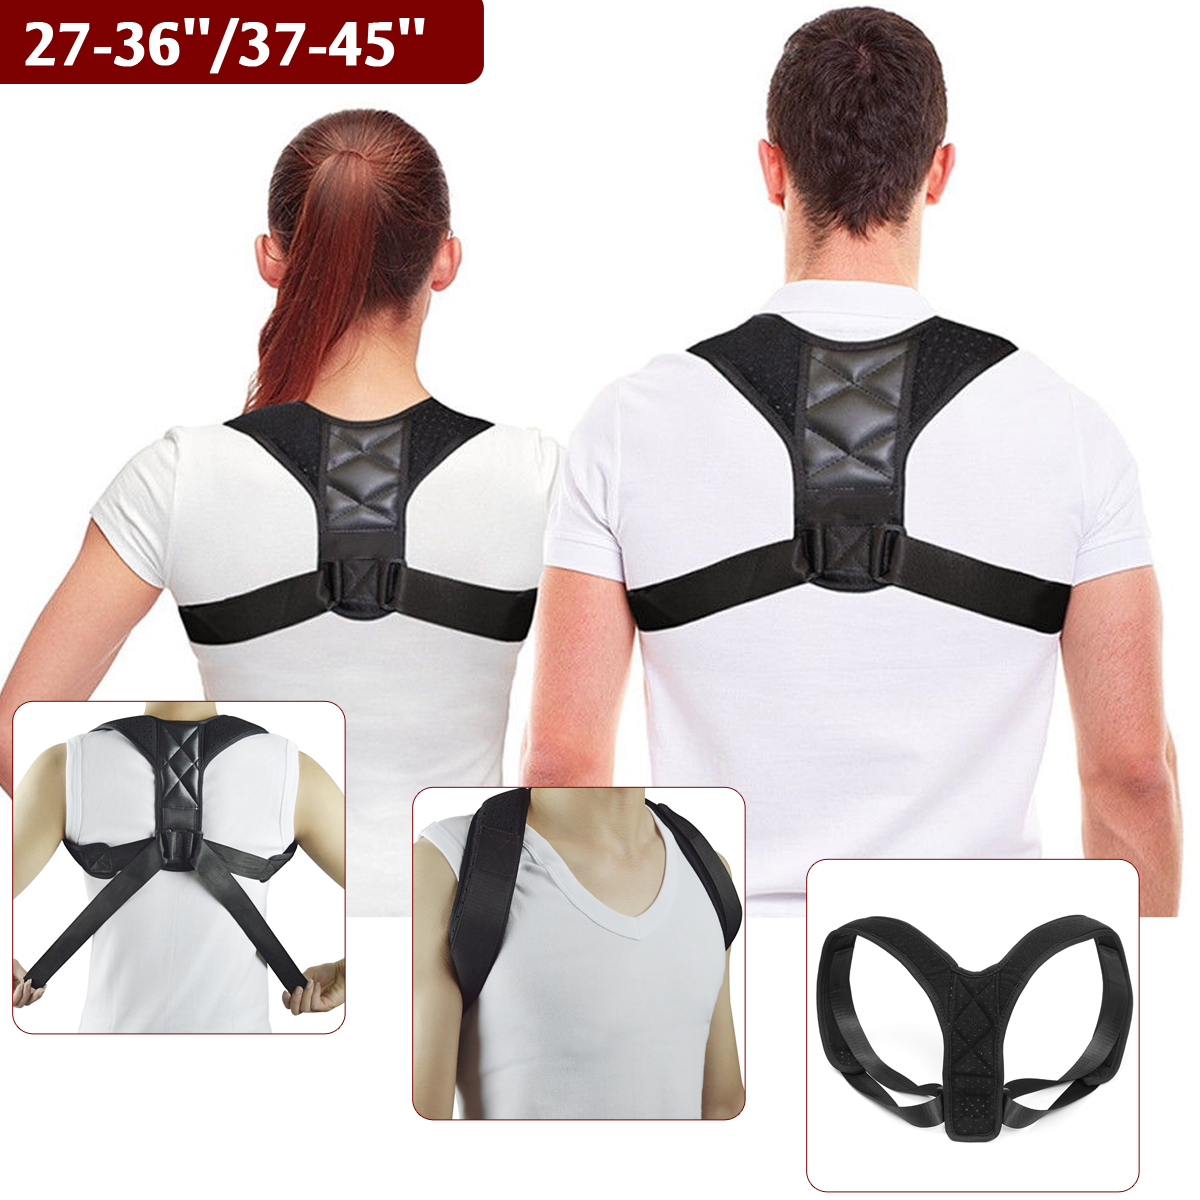 Male Female Adjustable Therapy Body Wellness Posture Hump Corrector Breathable Shoulder Lumbar Brace Support Belt 27-36/37-45Male Female Adjustable Therapy Body Wellness Posture Hump Corrector Breathable Shoulder Lumbar Brace Support Belt 27-36/37-45